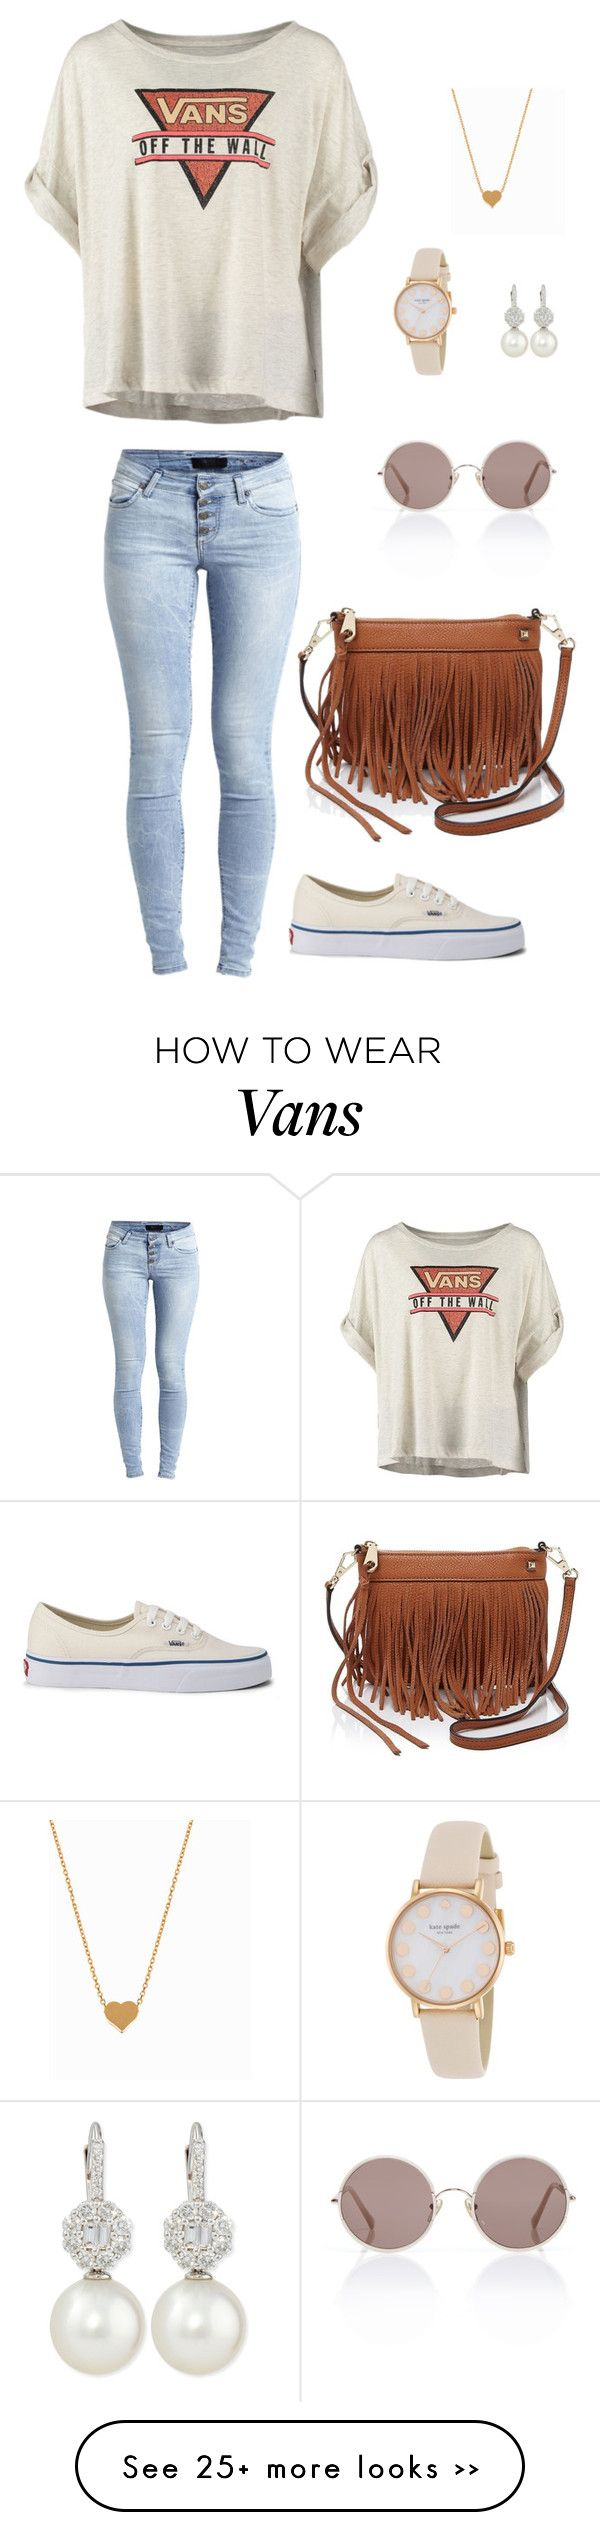 """""""Vans"""" by dramatically on Polyvore"""